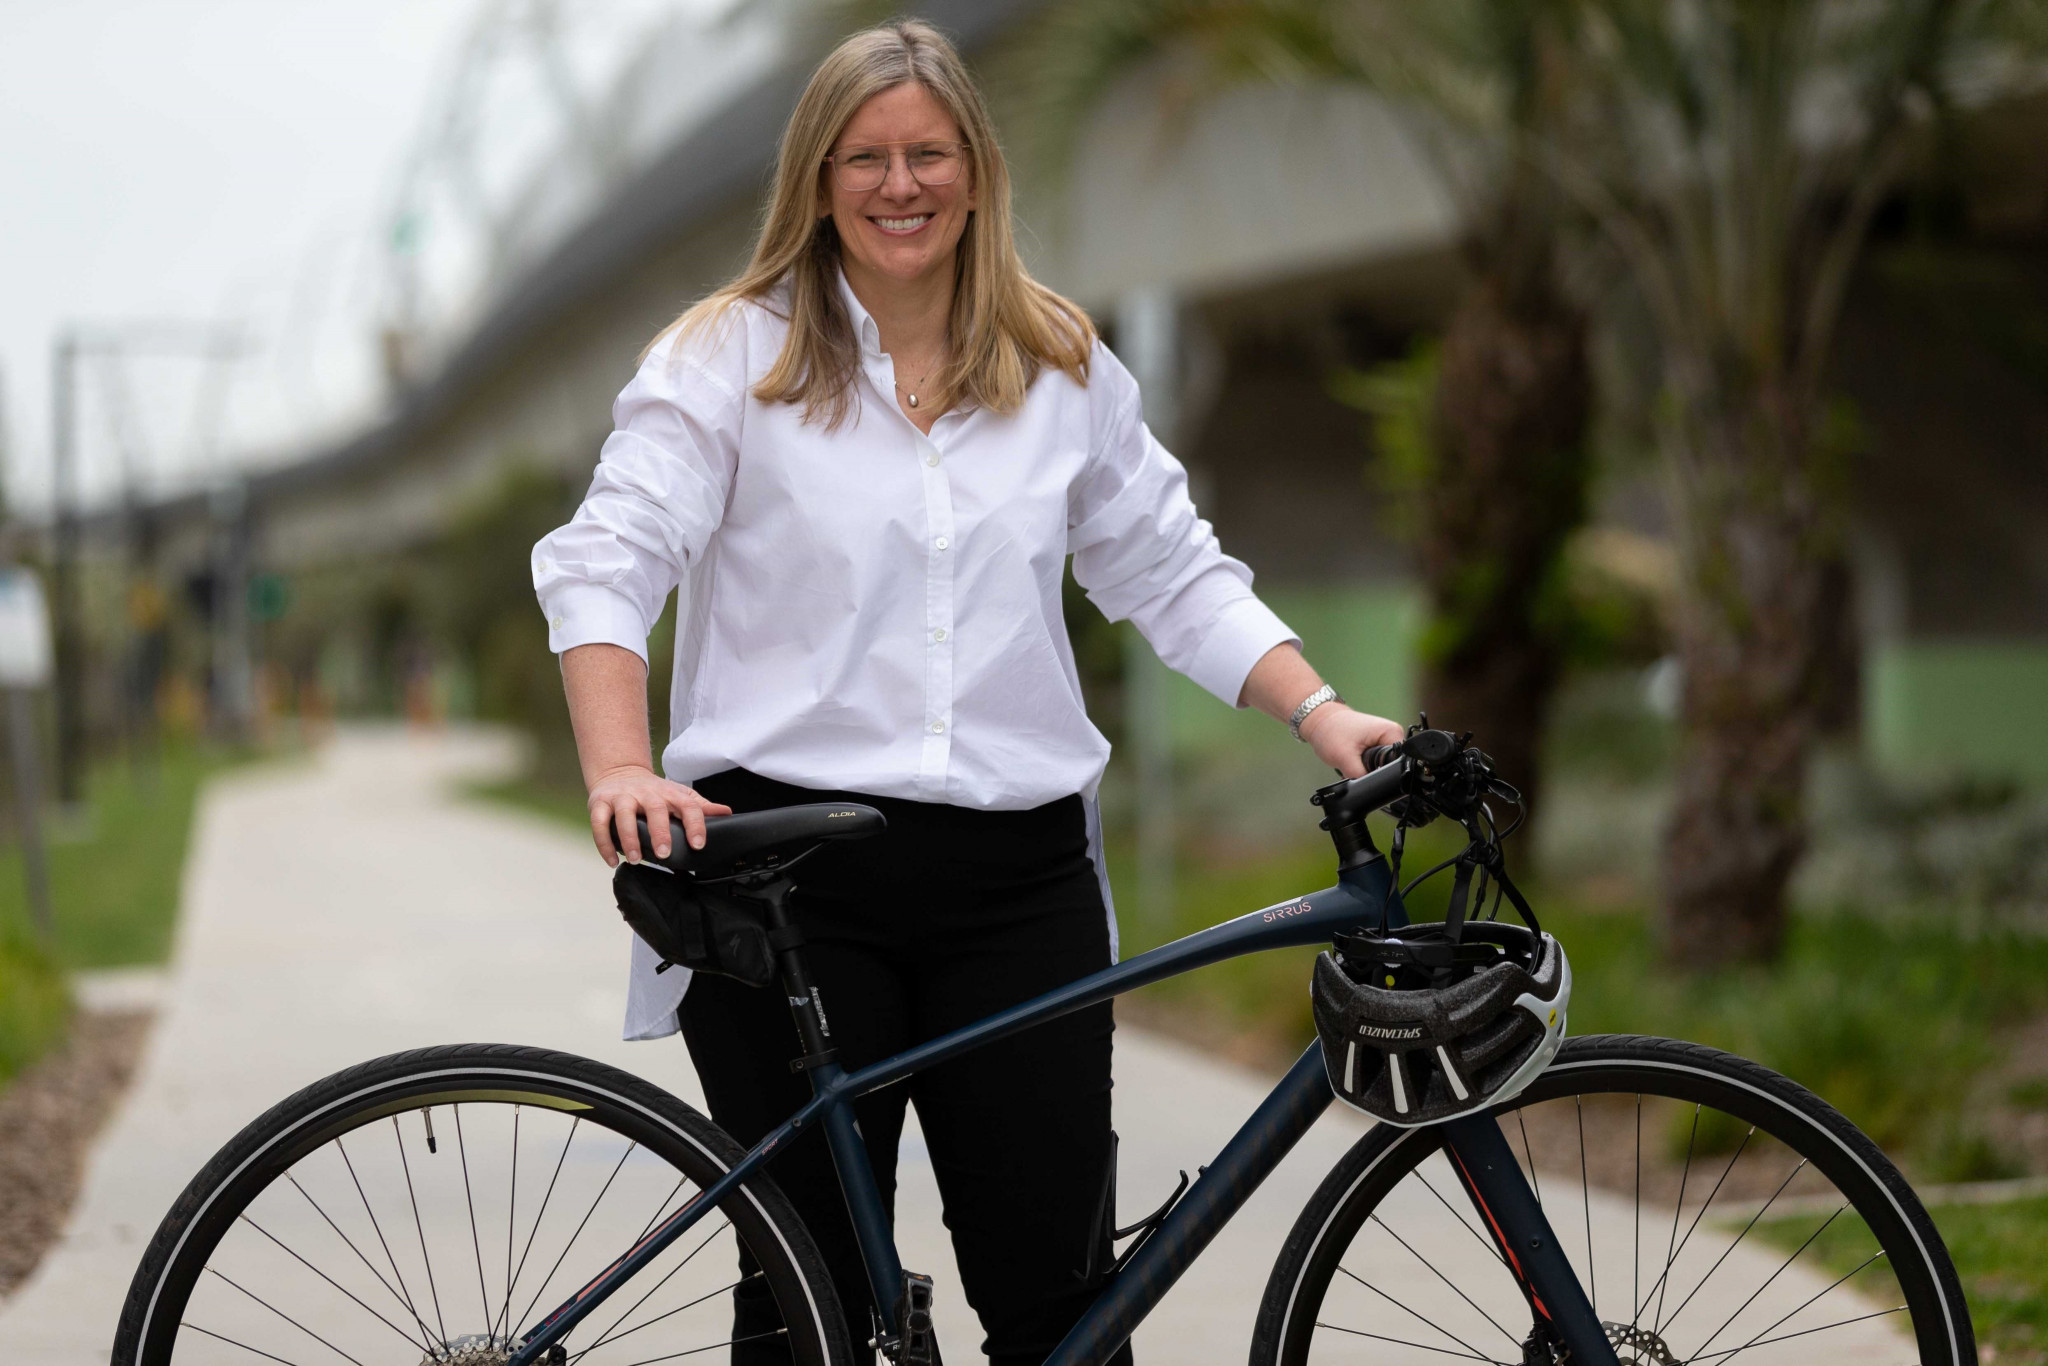 Trudy Lindblade will now act as the chief executive for the 2023 Cycling World Championships ©UCI